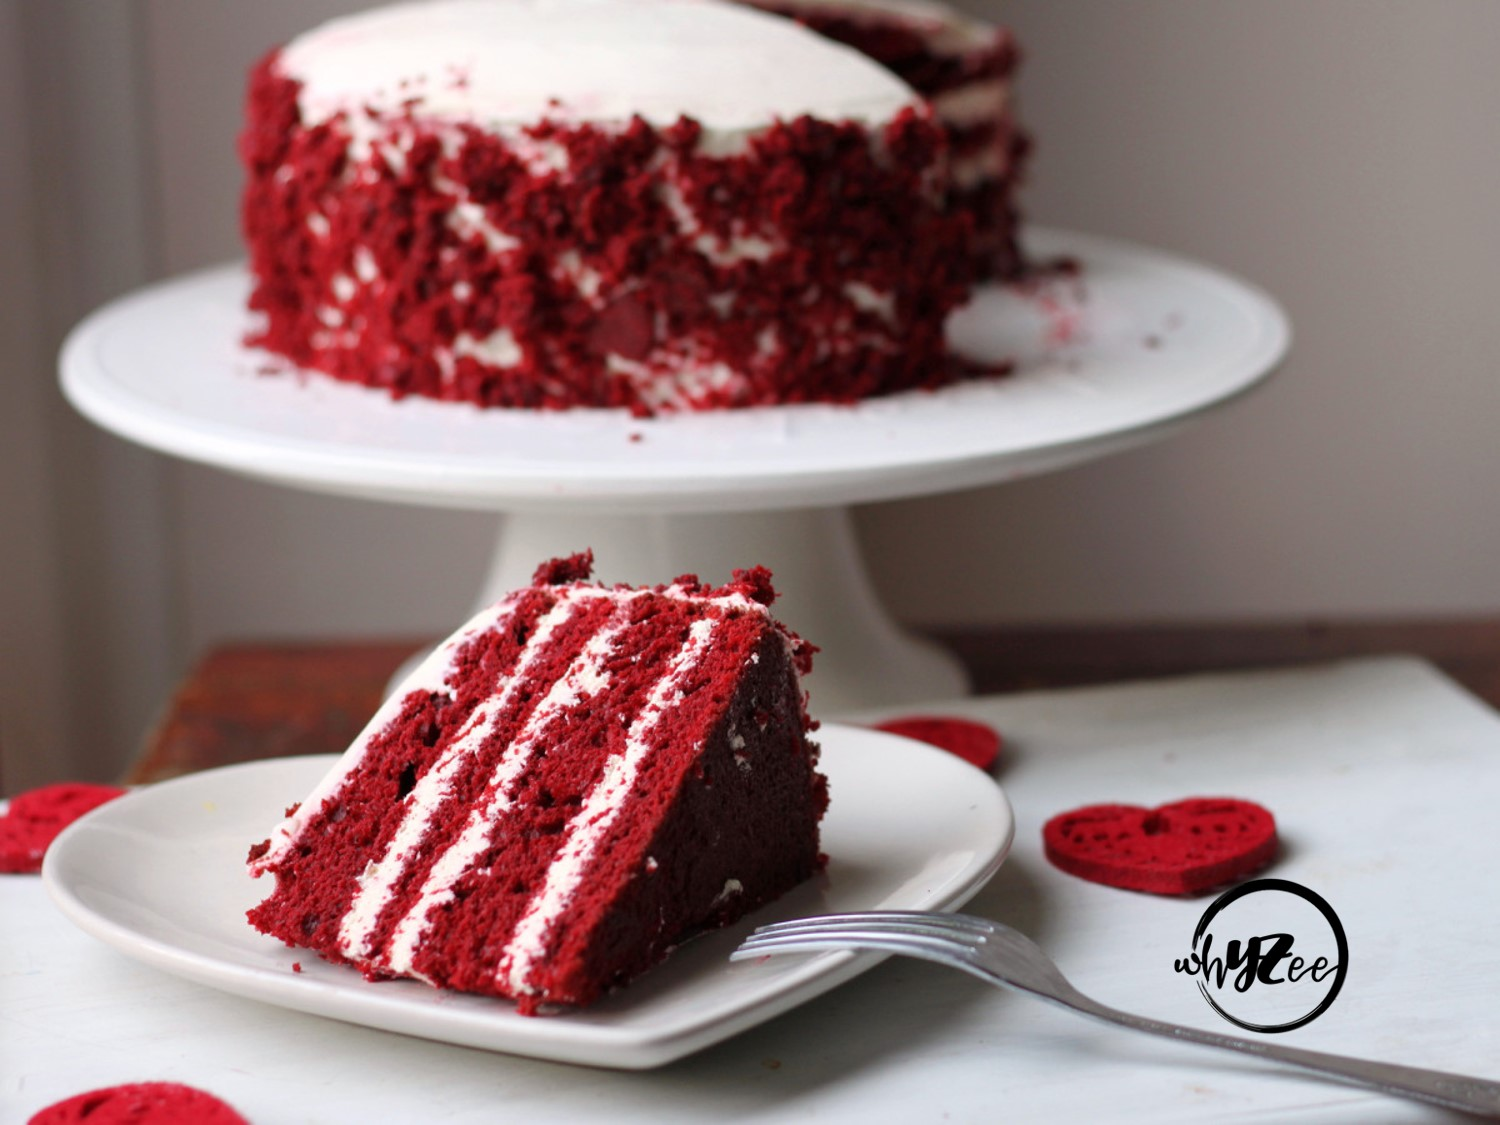 Red Velvet Cake - Whyzee Birthday Cake Delivery